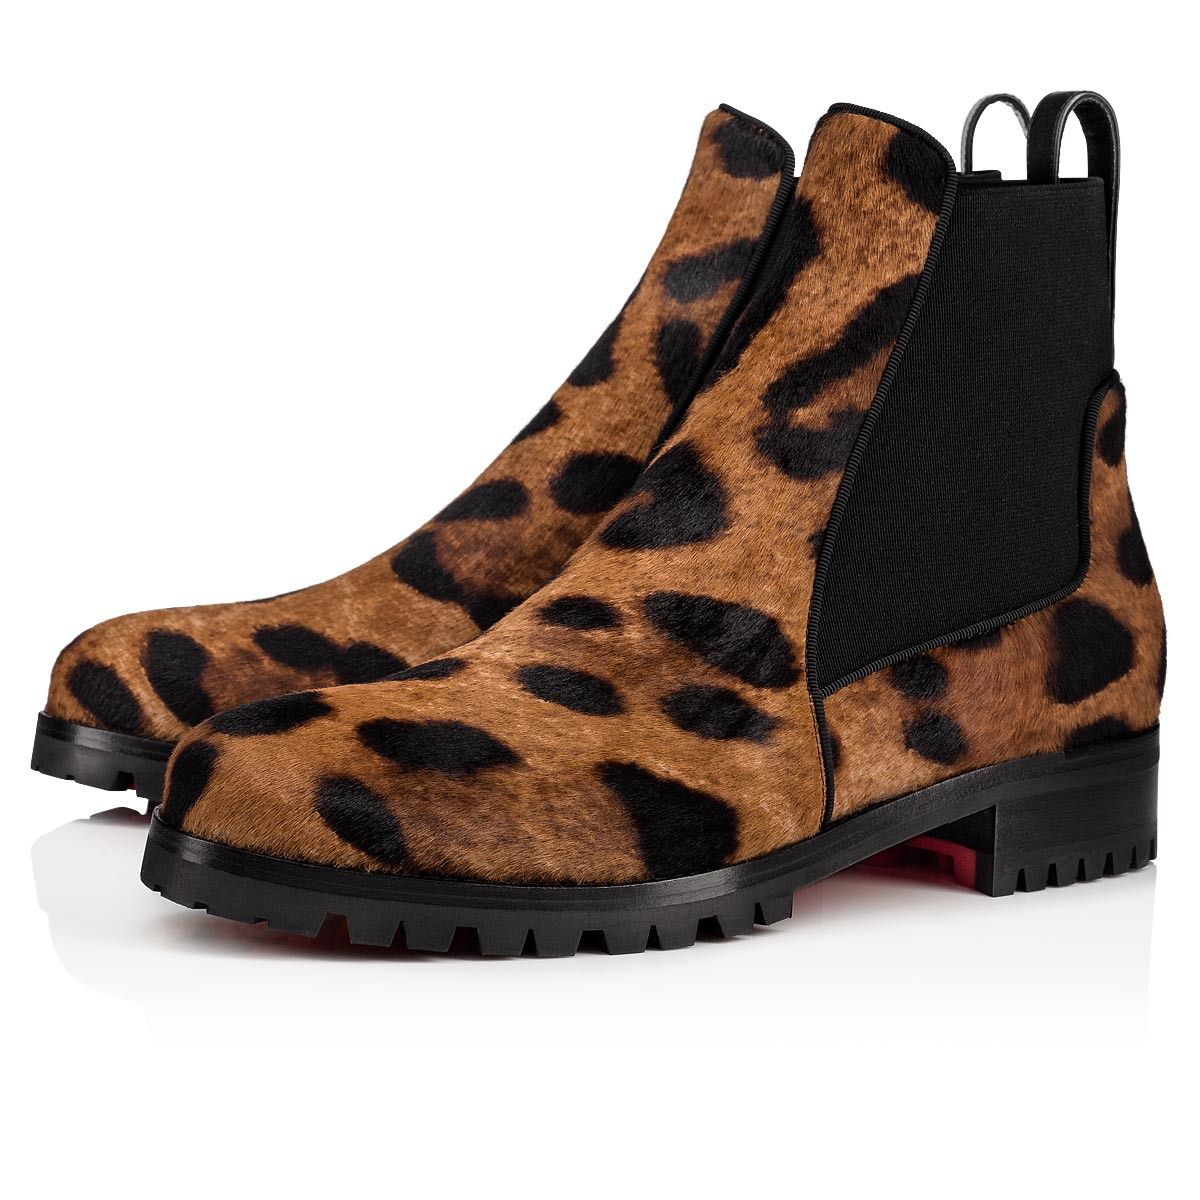 a6e334df0a30 A modern style, the Marchacroche boot seduces with its casual elegance.  Made of maxi leo-printed pony hair, it is mounted on a lug sole.